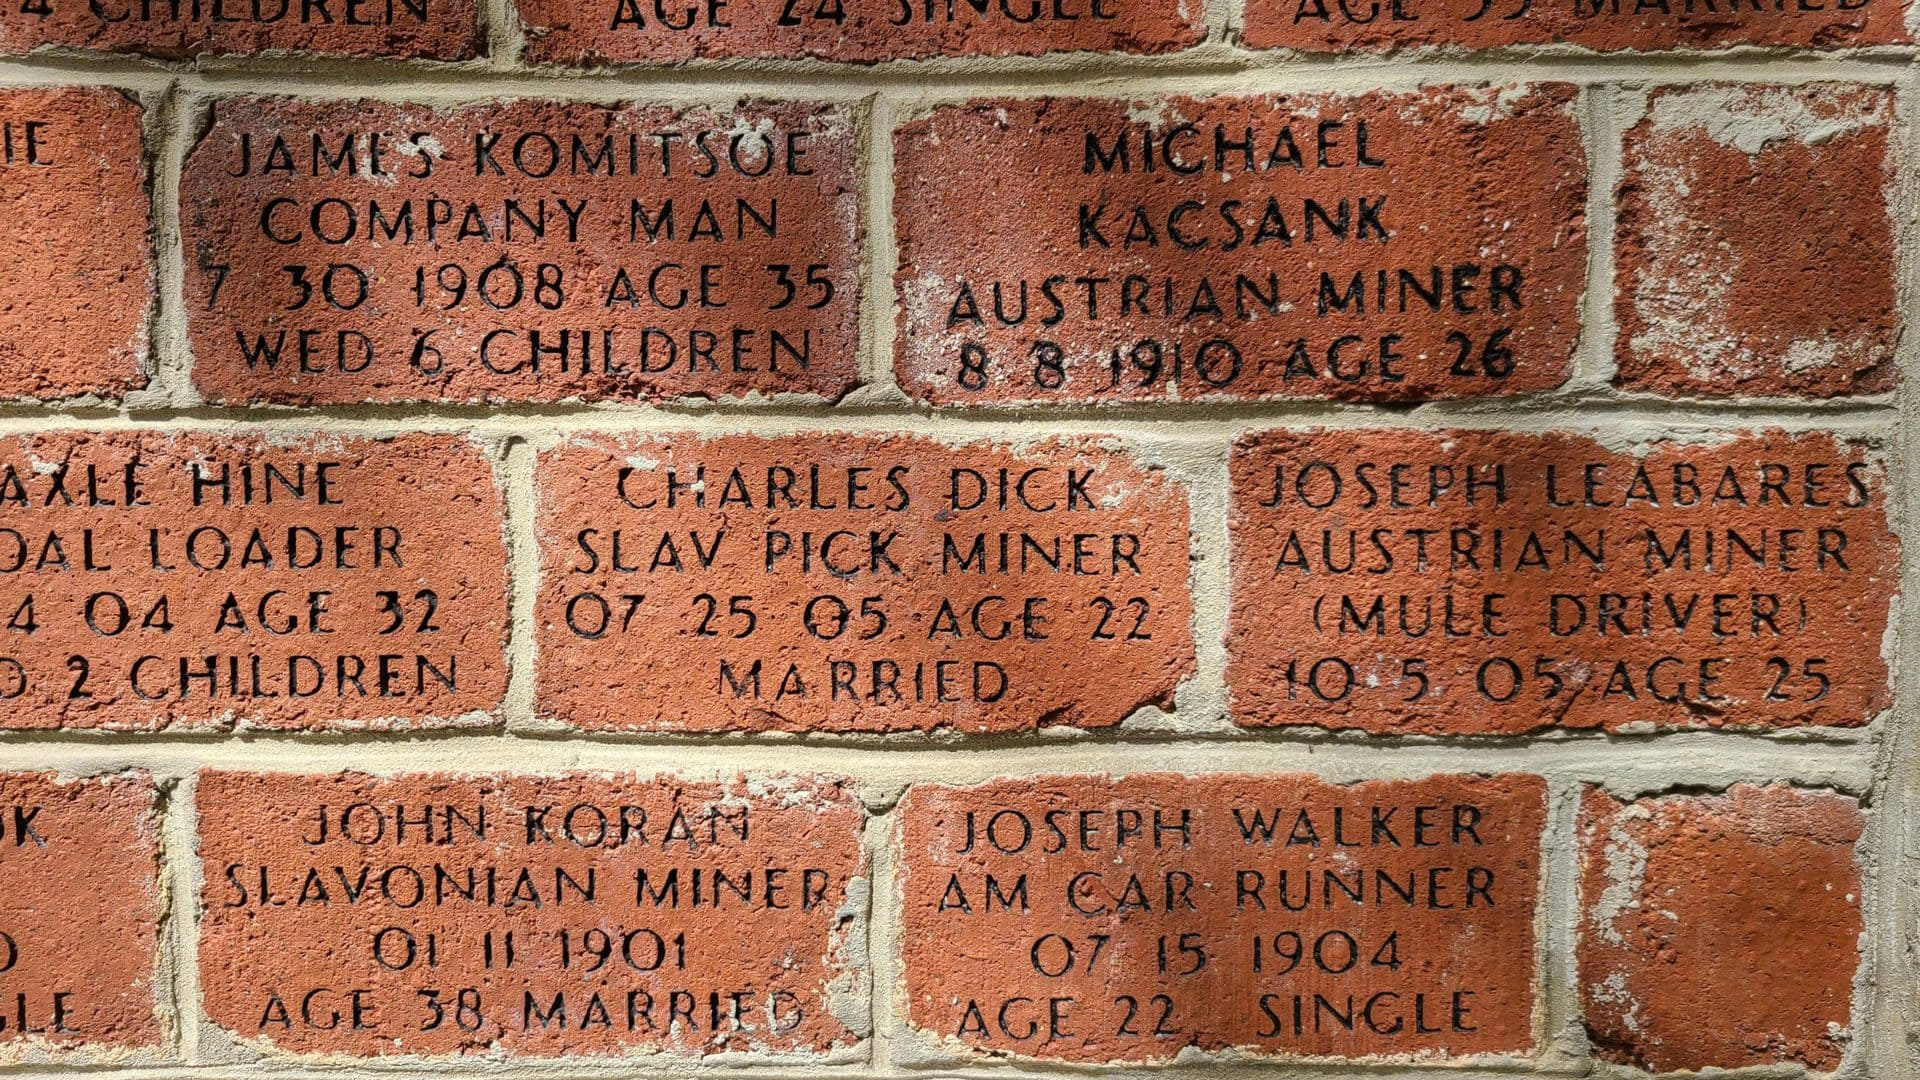 The names of coal miners are etched into a red brick memorial. The dates are from the early 20th century. The miners were all in their 20s and 30s.